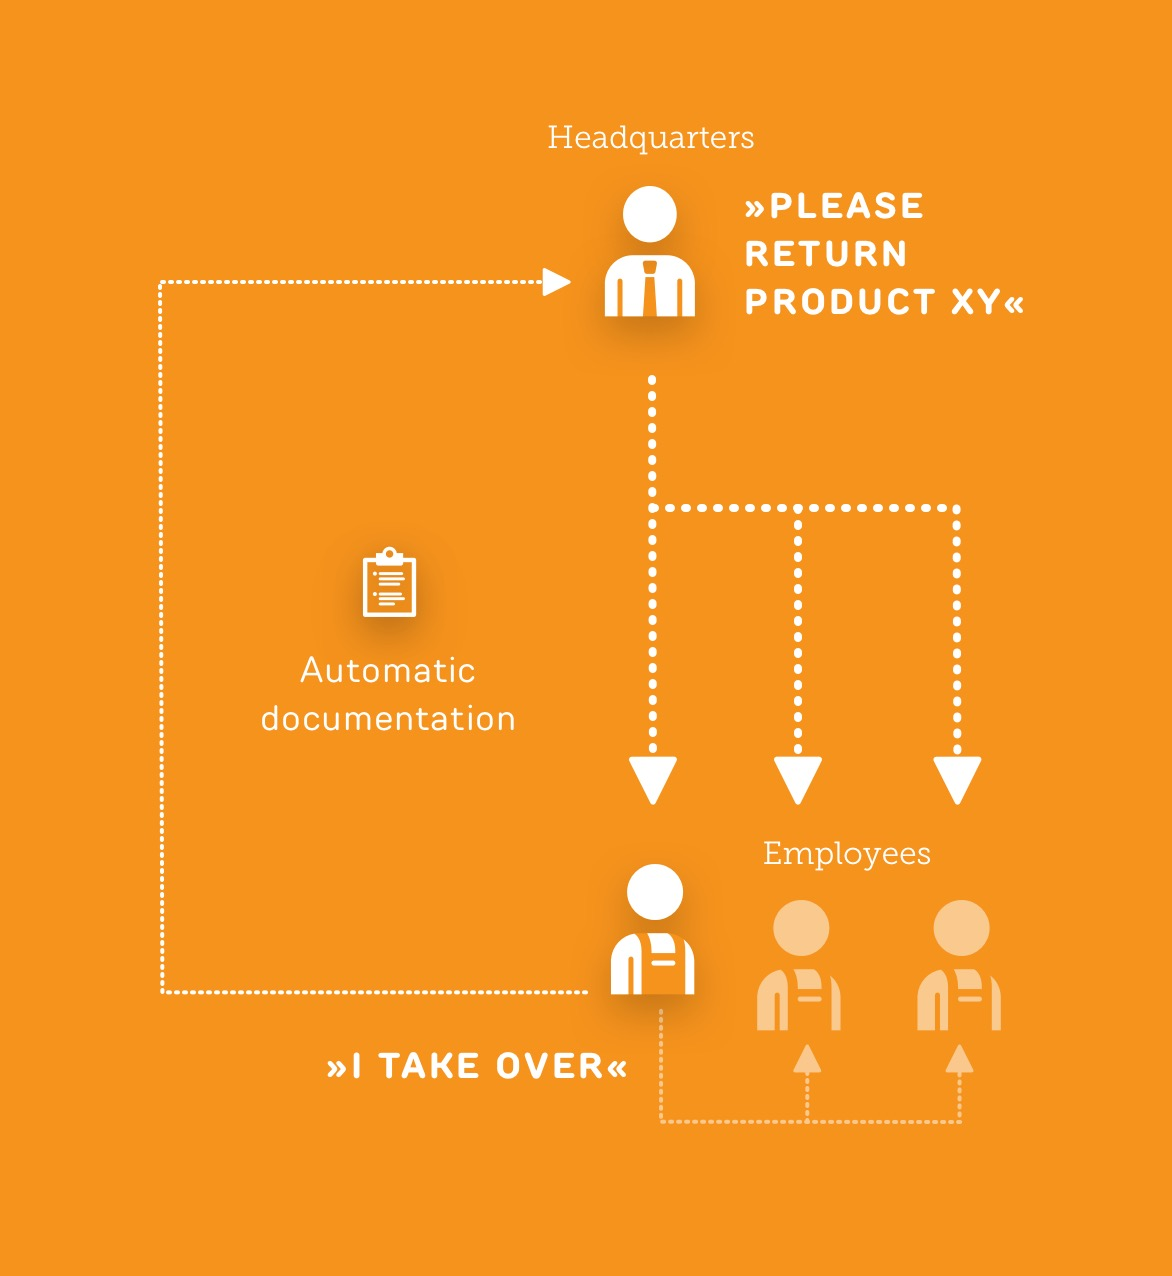 Communication between head office and store - Use case ReAct Retail